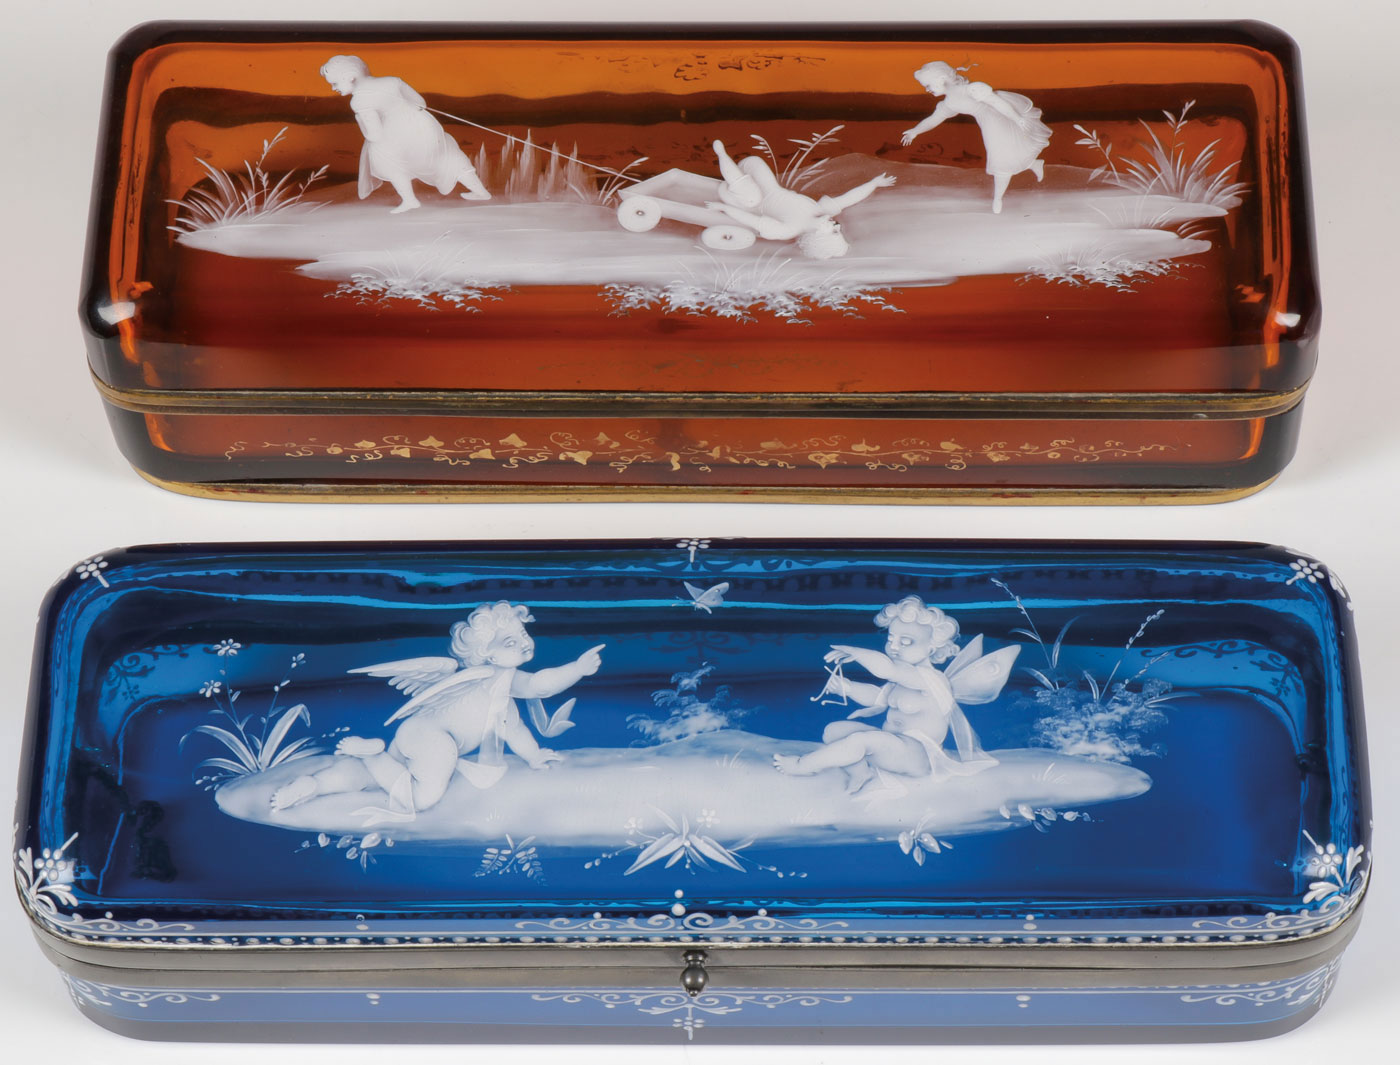 Lot 44 - EXCEPTIONAL MARY GREGORY GLOVE BOXES, C. 1880